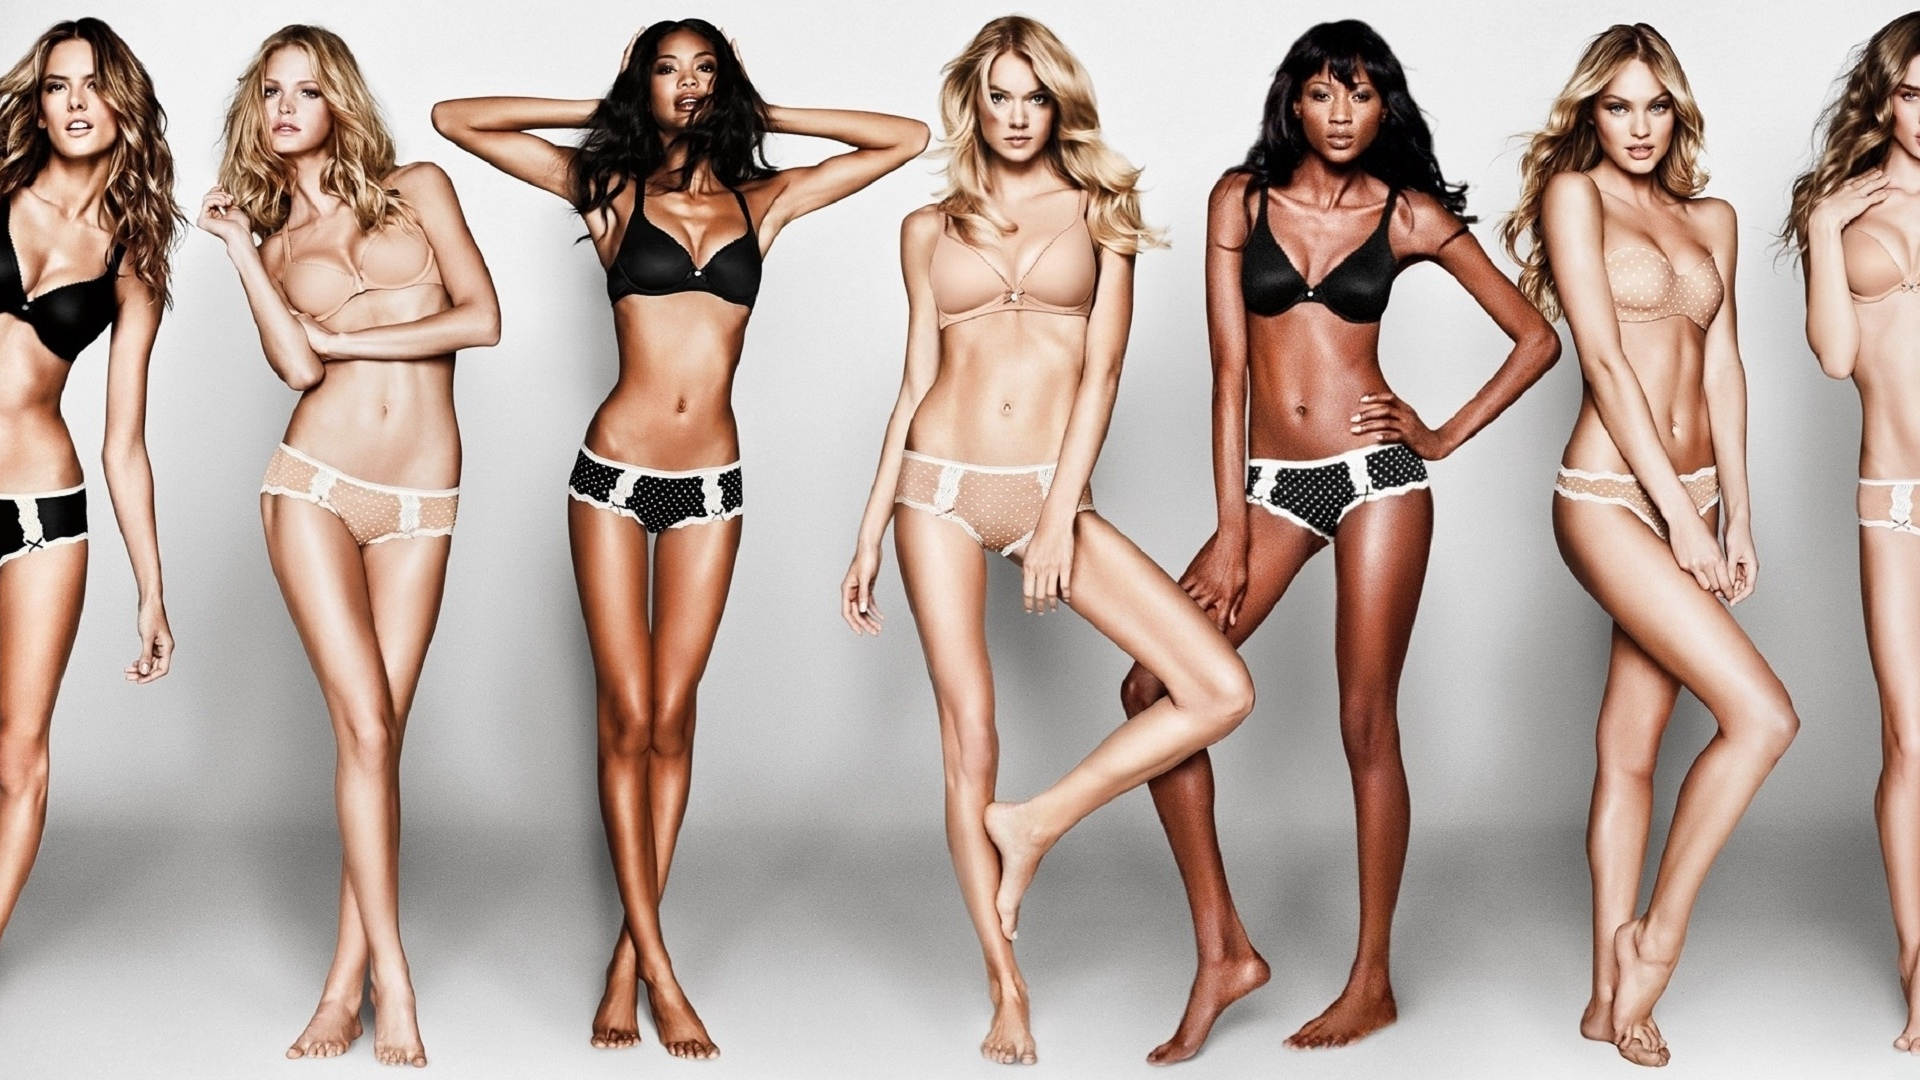 unrealistic body images These projected body images in fashion have led to many women having bad self-acceptance and low self-esteem issues fashion brands and media outlets that continue to put out these unrealistic body.